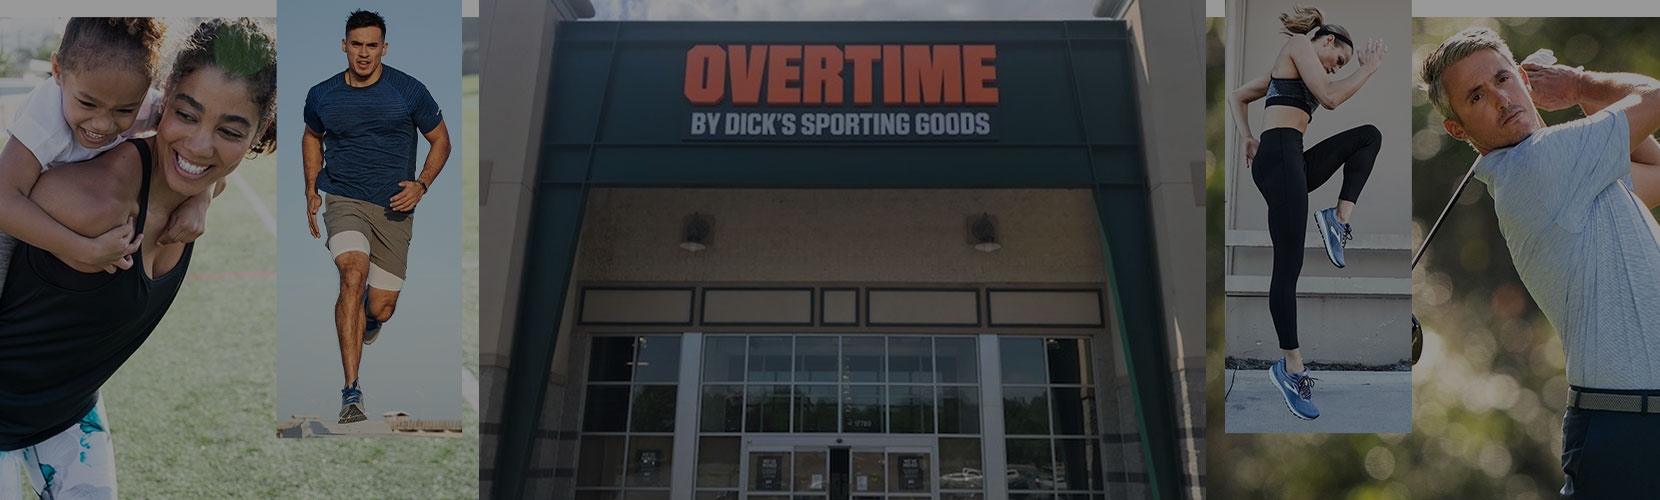 Overtime by DICK's Sporting Goods collage